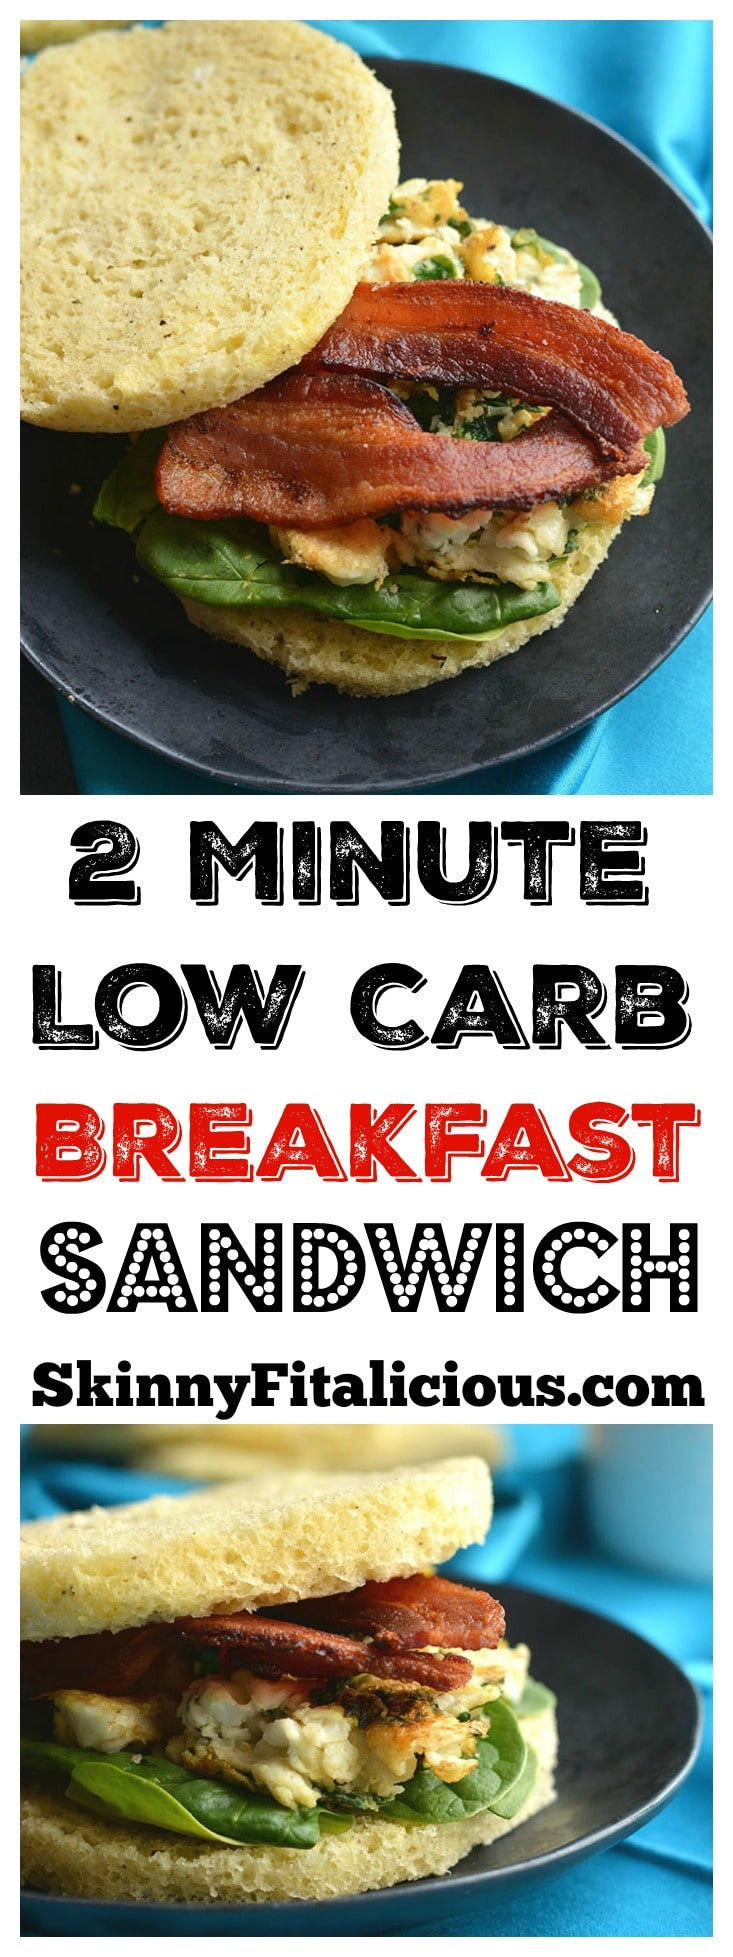 Low Carb Breakfast Sandwich made in under 2minutes in the microwave. Make them ahead of time & freeze, or make them morning, noon or night for a healthy, Paleo, fluffy like a cloud bread. Paleo + Gluten Free